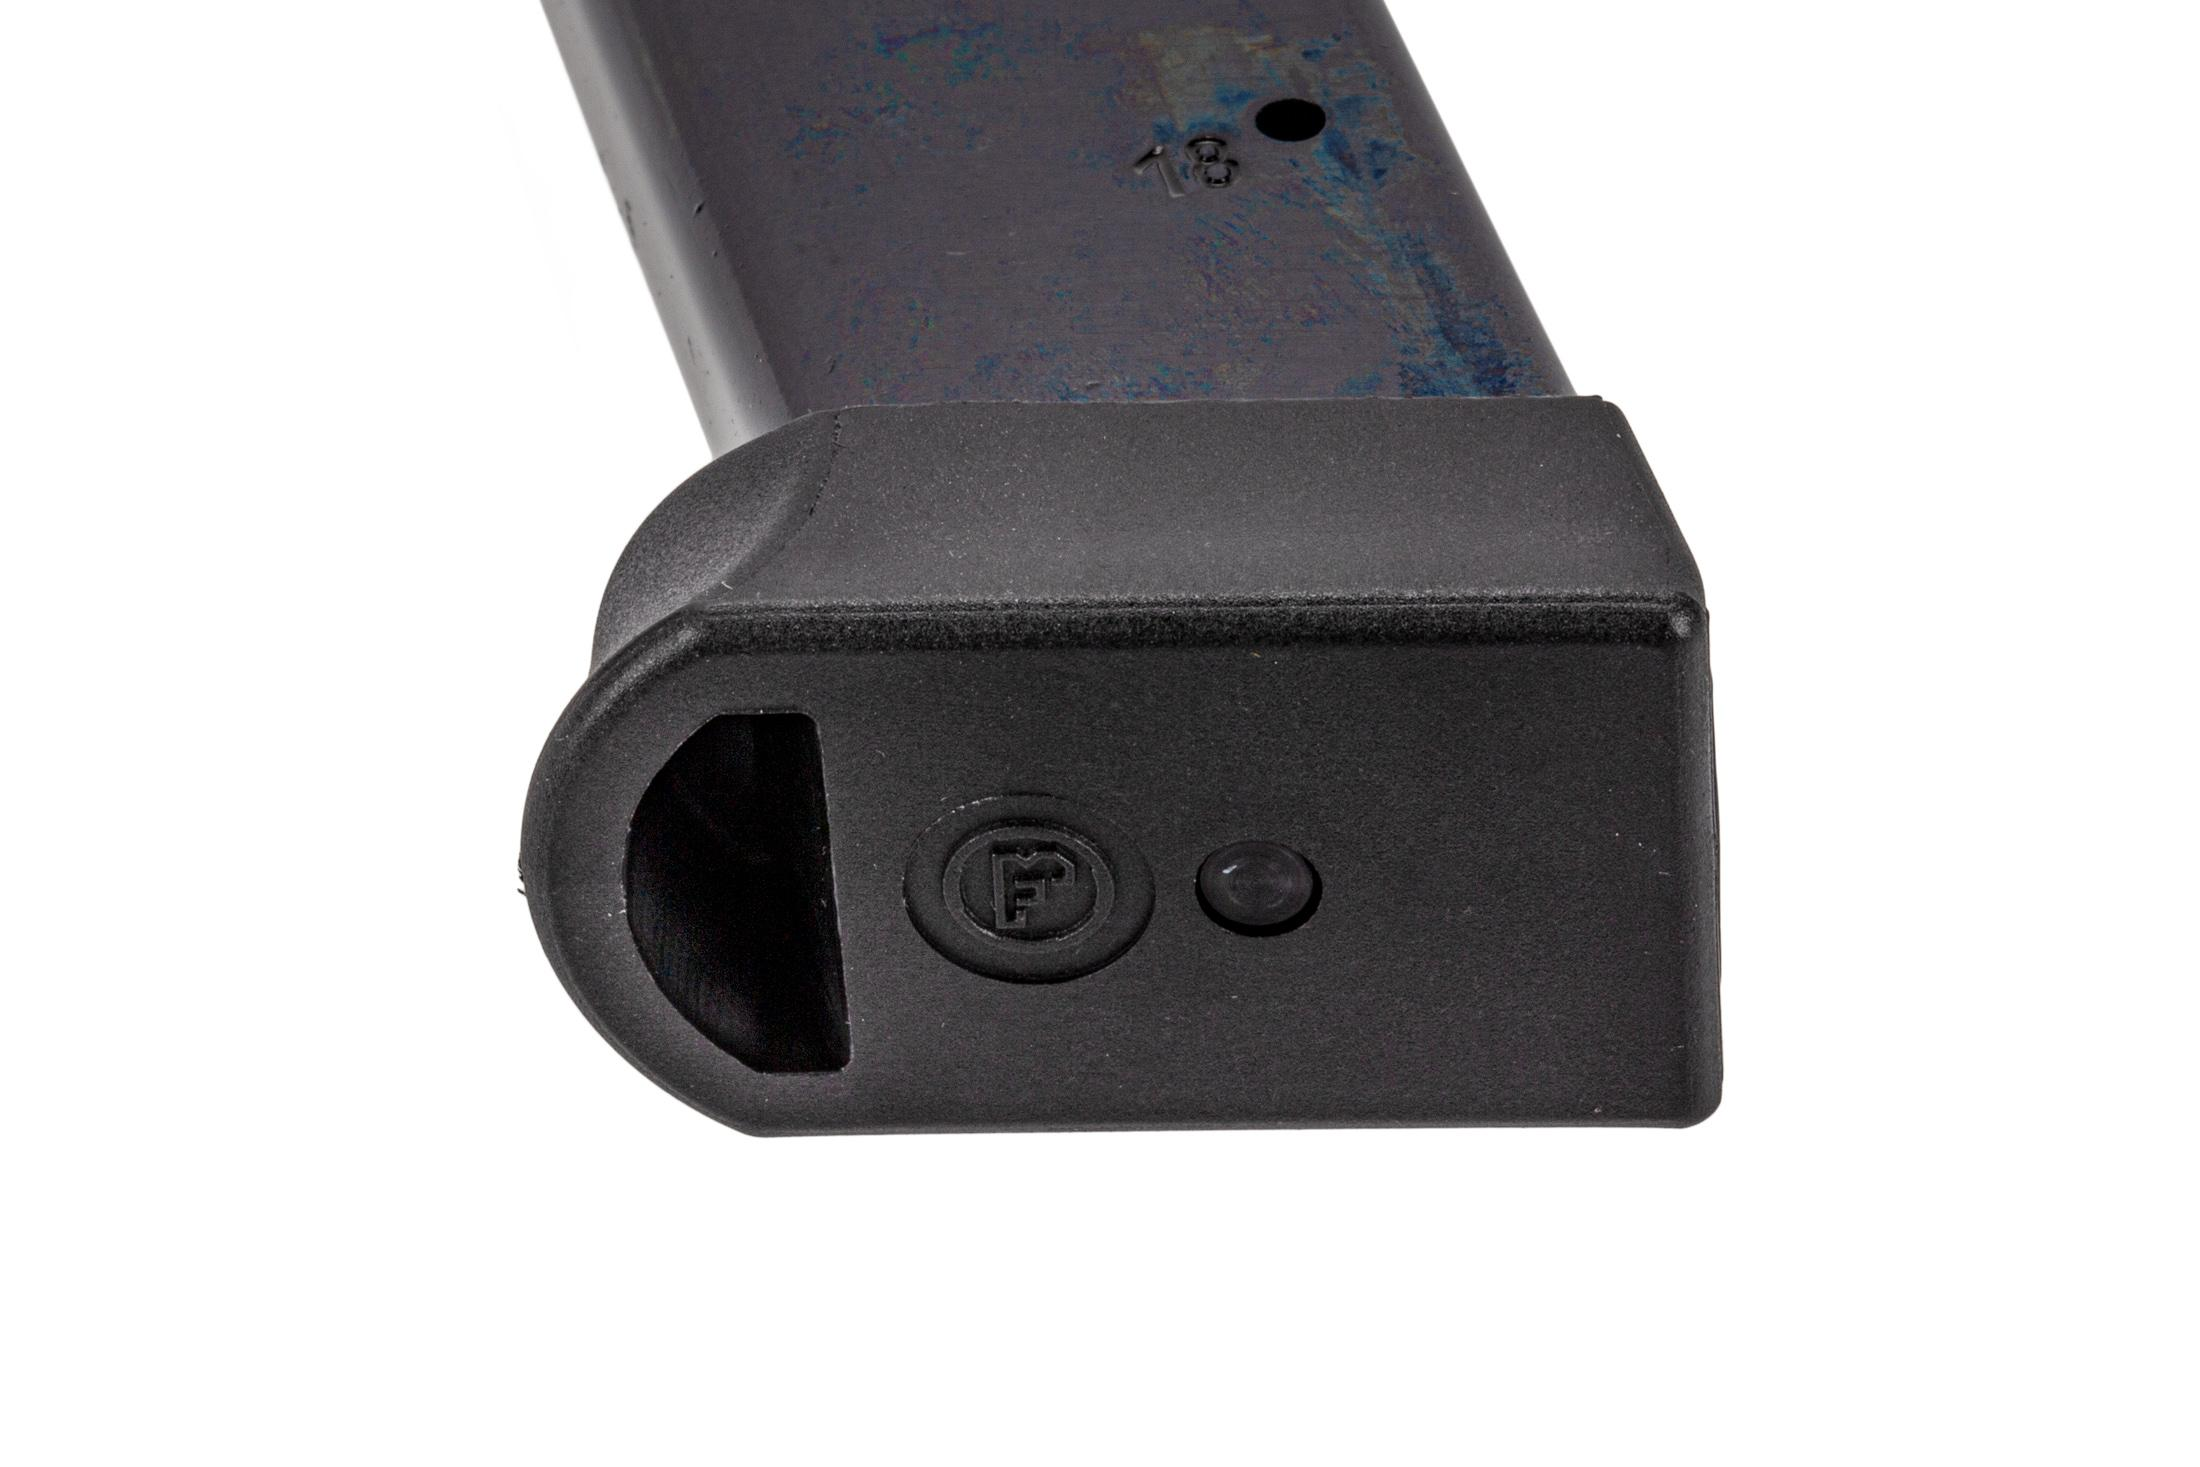 CZ USA full cap 18-round 9mm magazine for CZ75 SP-01/85 handguns with polymer base plate.